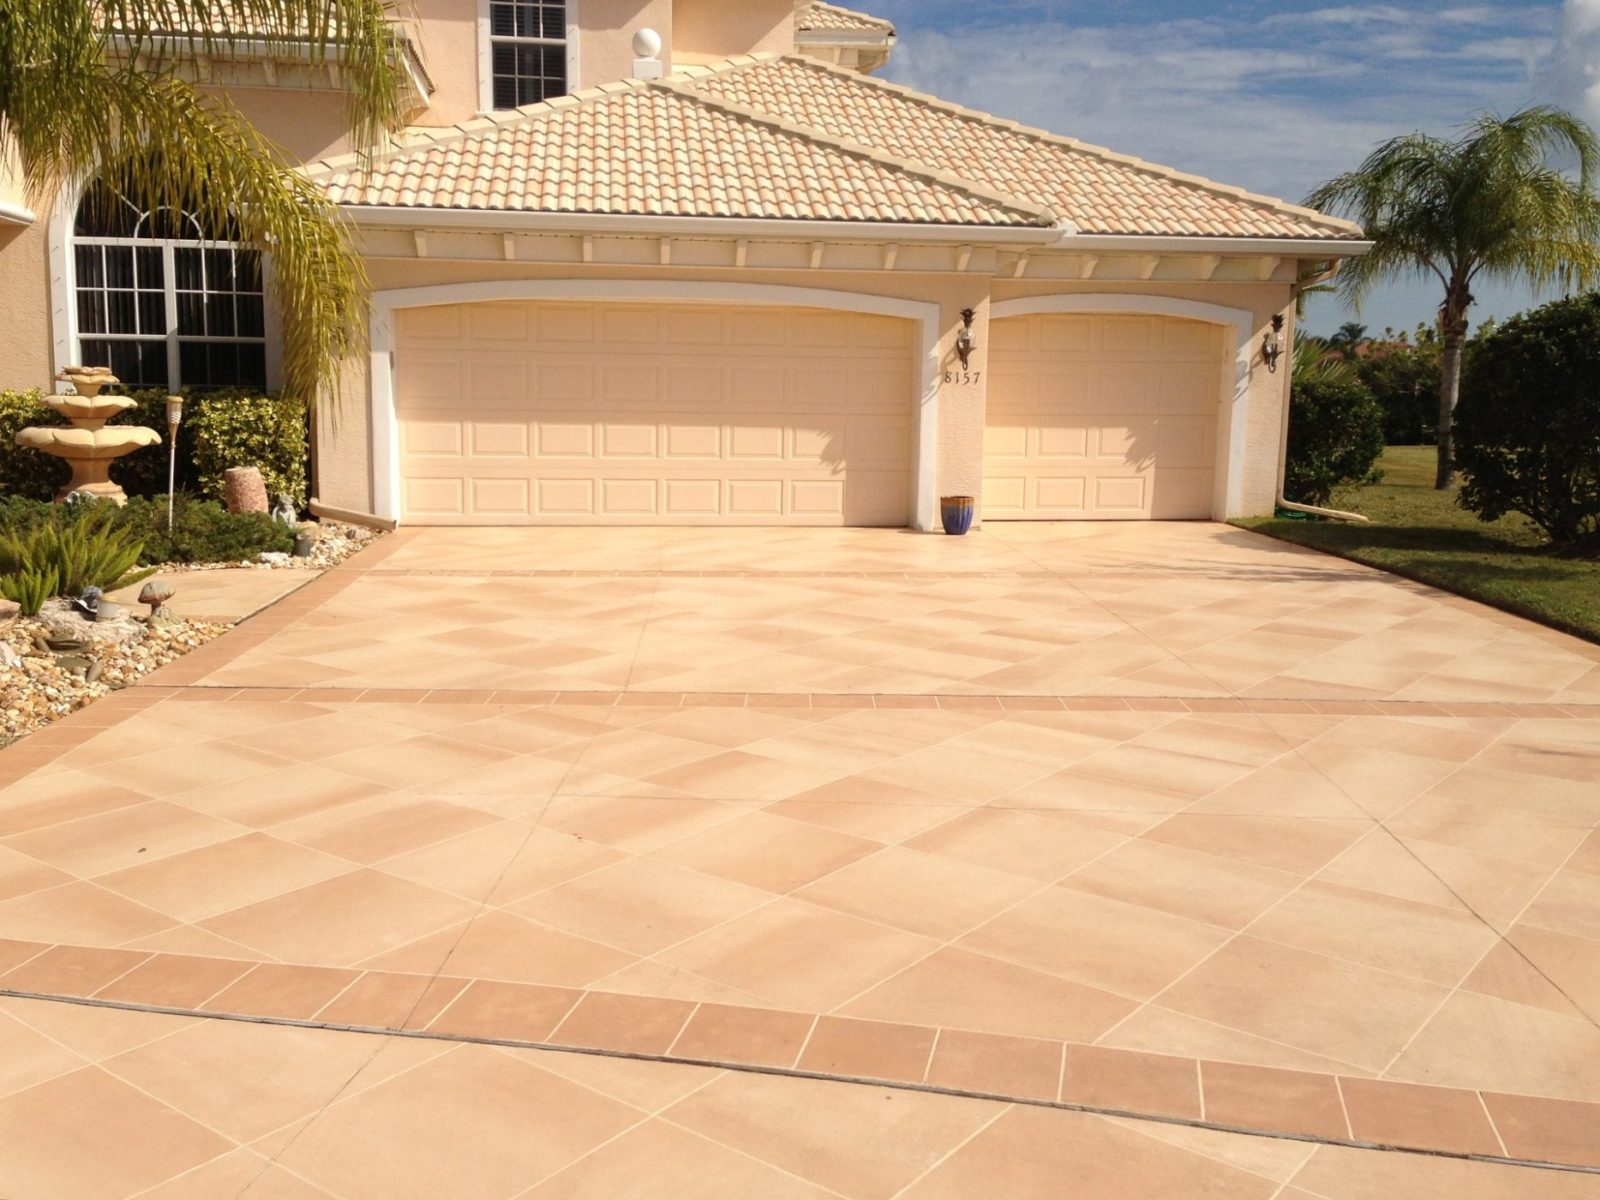 Oceanview concrete new standard for custom design for New driveway ideas